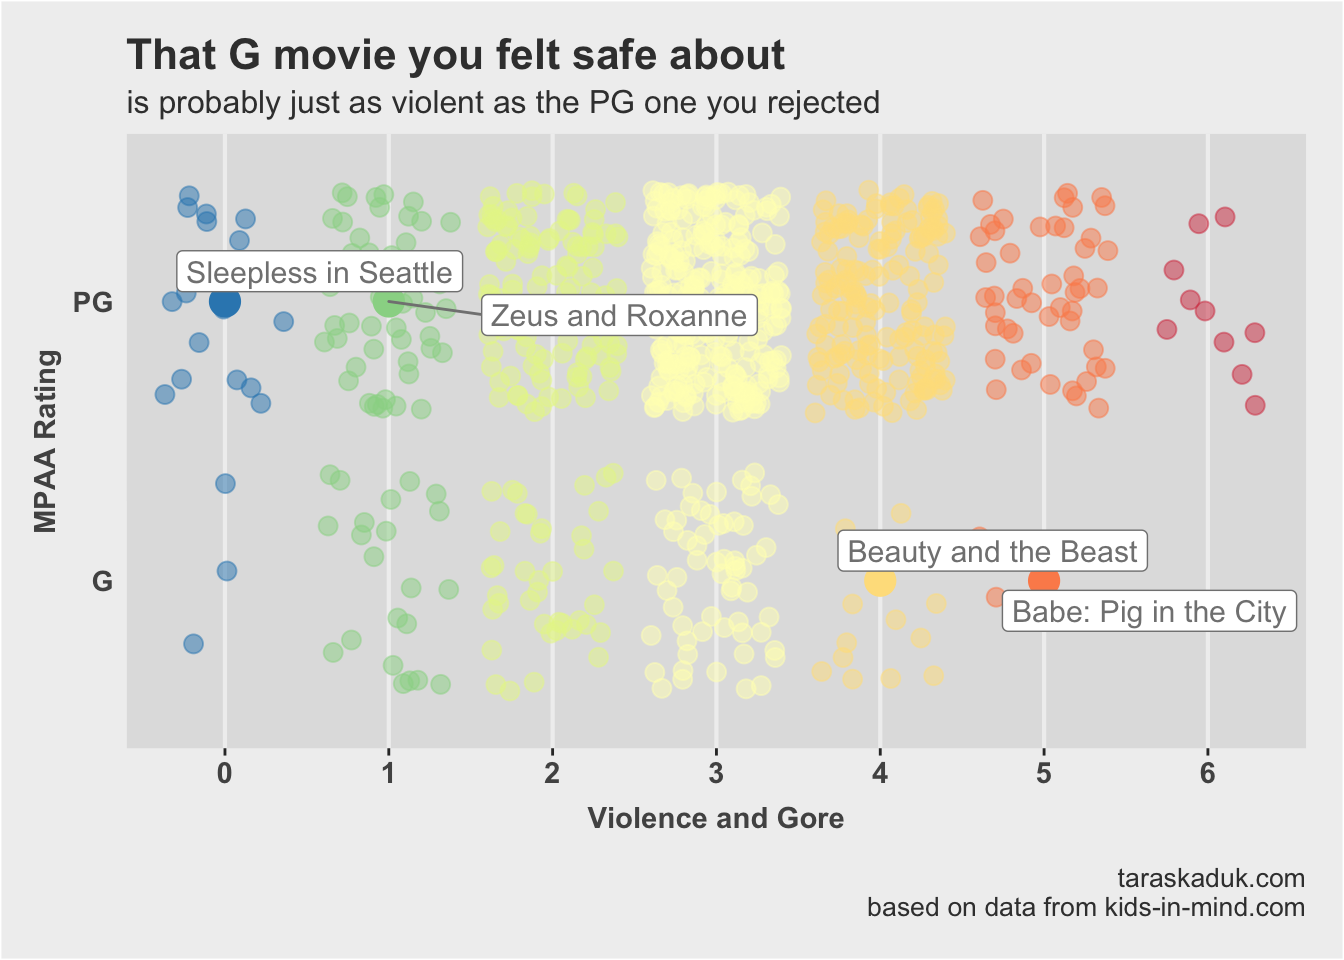 Do MPAA movie ratings mean anything? https://d33wubrfki0l68.cloudfront.net/a244ddec8c16f2fc5e49de2e31d47ad8db73c9b1/2eb52/posts/mpaa/violence-1.png